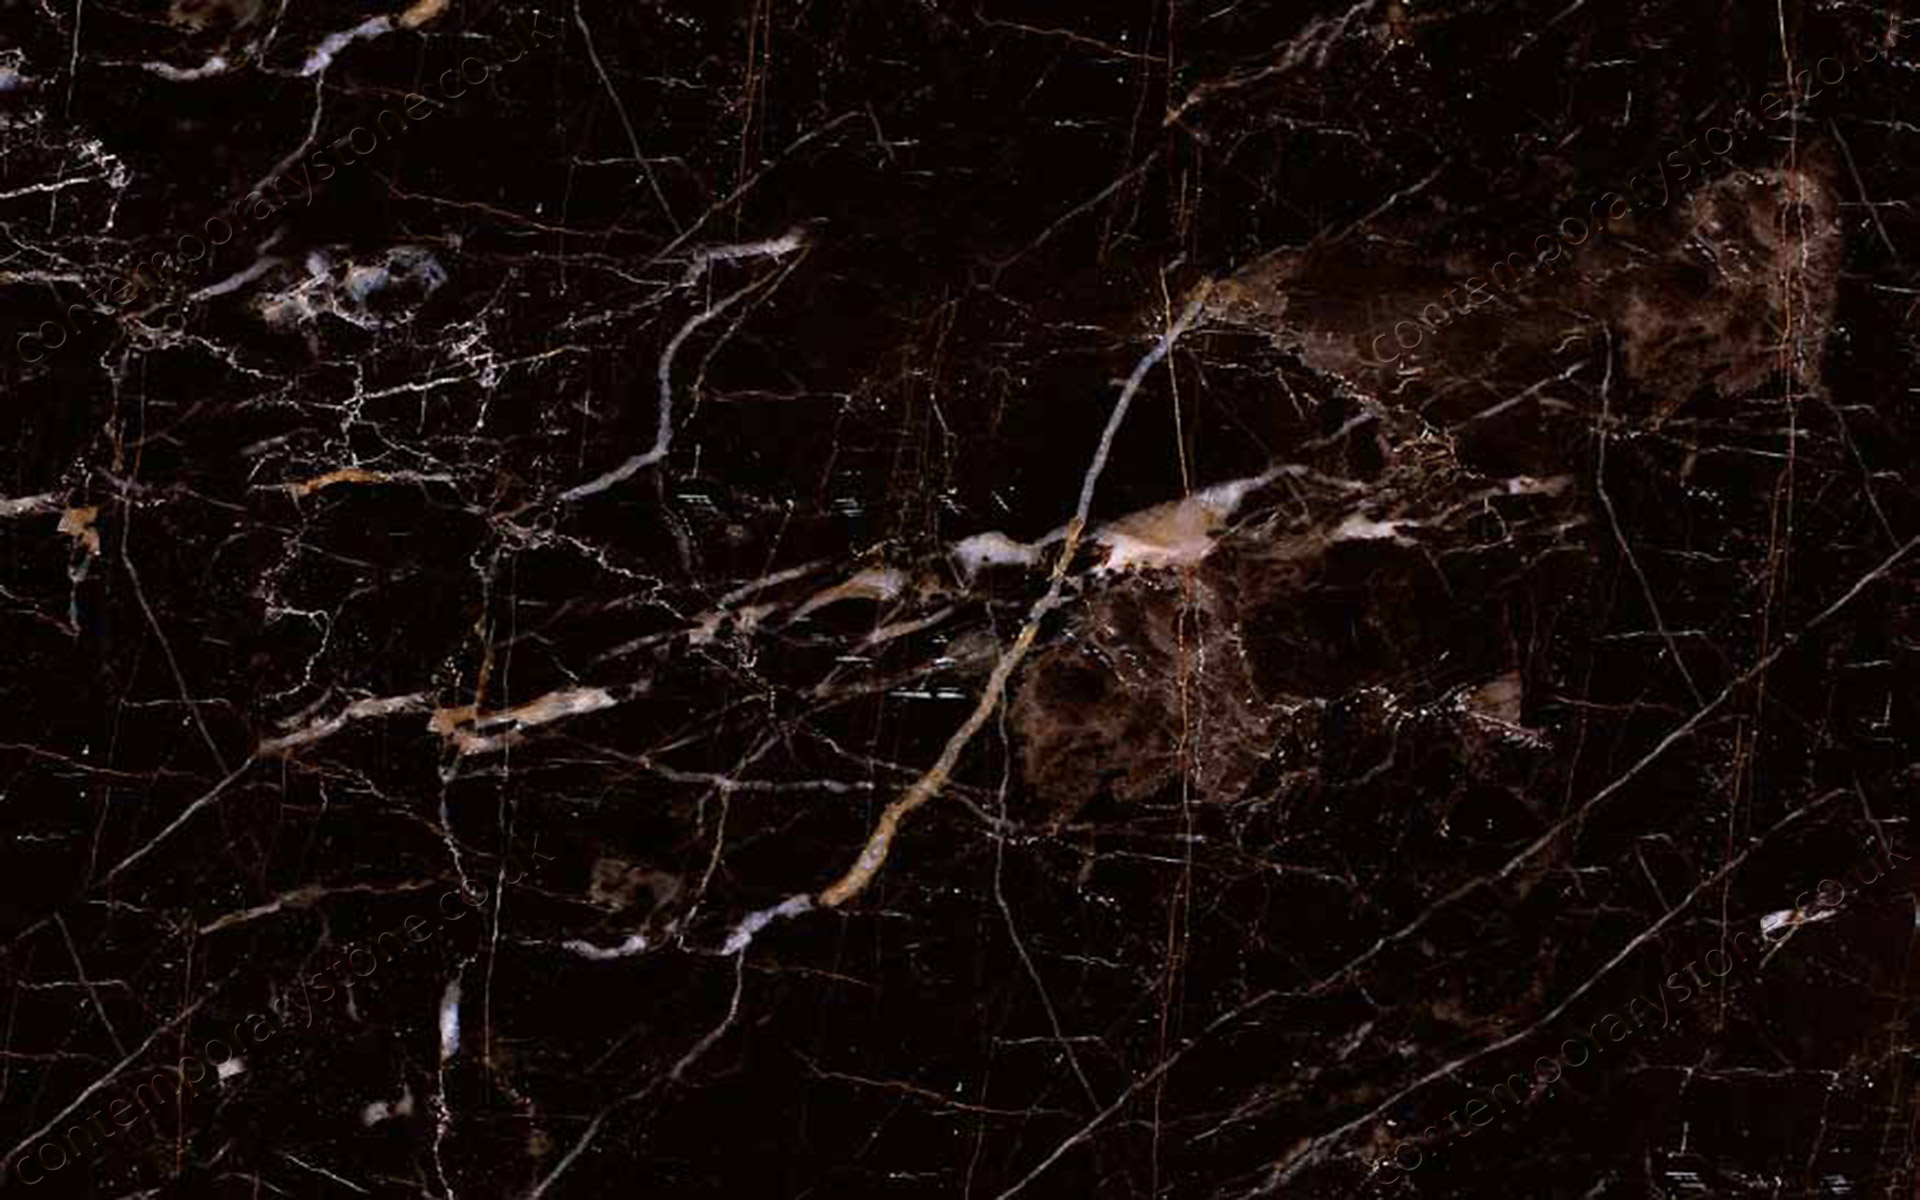 Noir Saint Laurent marble close-up